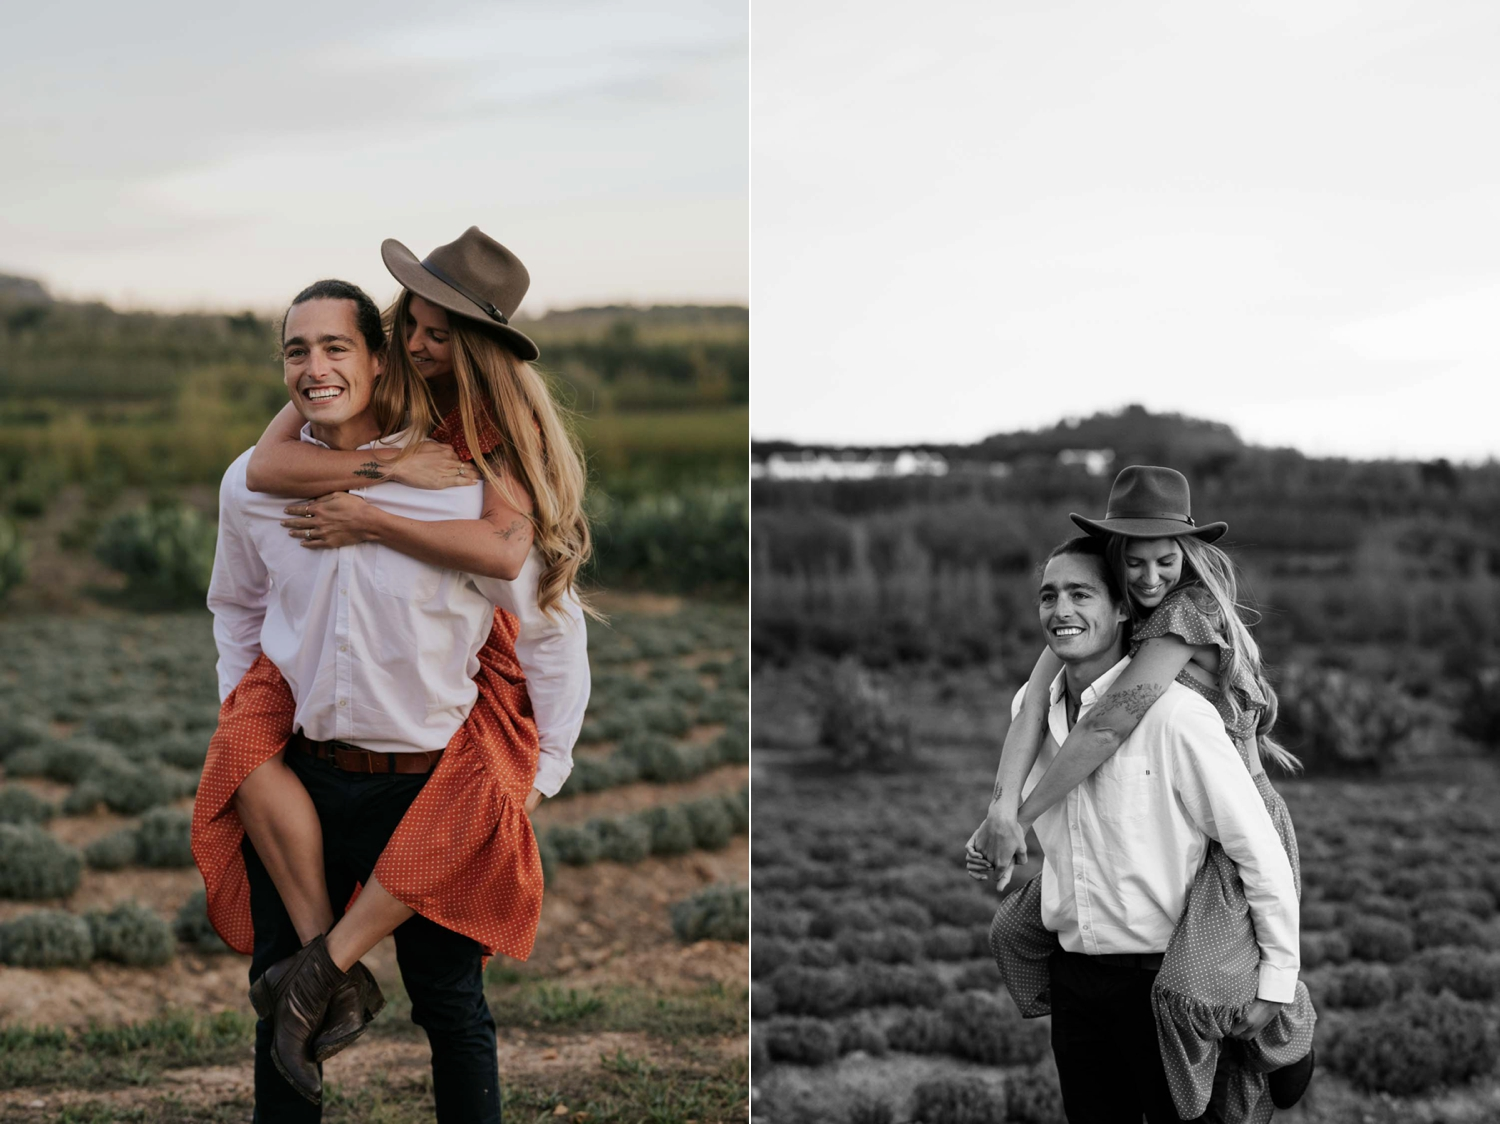 Boho Gypsy Couple Engagement Piggyback Ride In Babylonstoren Farm Fields Below Mountains